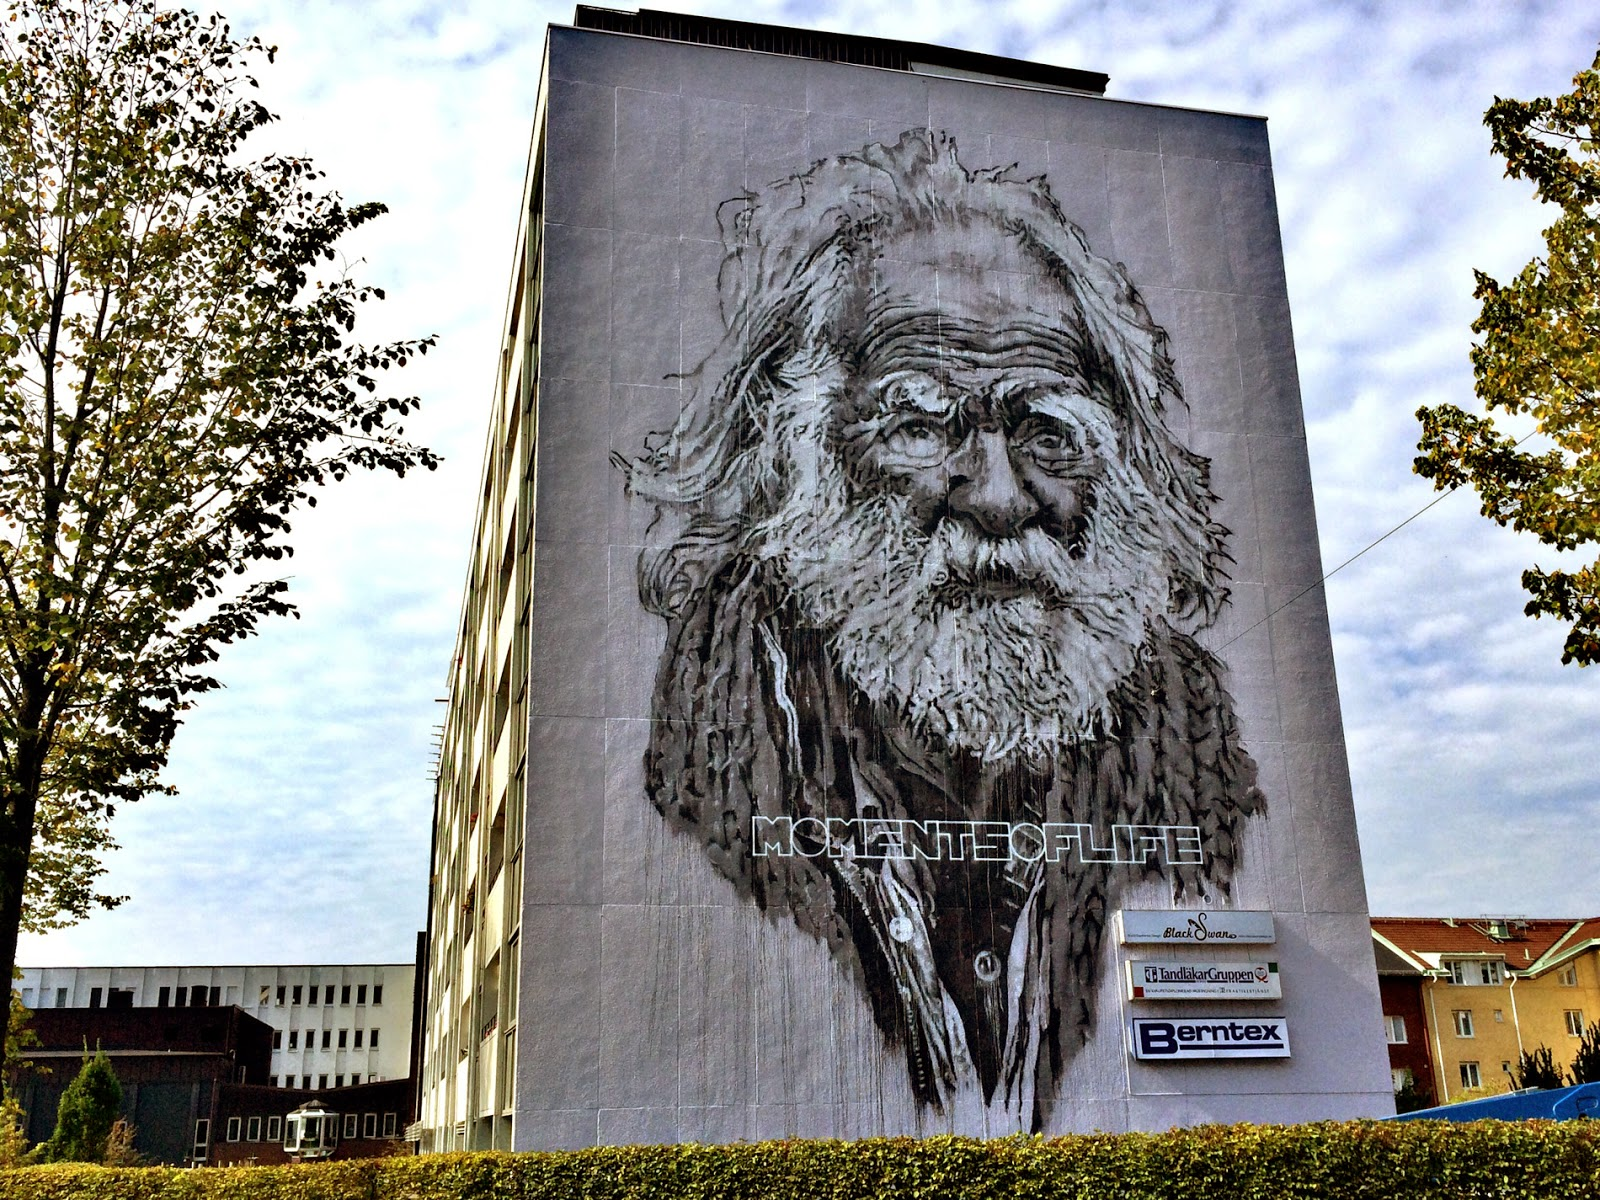 While we last heard from him in Djerba, Tunisia a few days ago, Ecb has now landed in Sweden to paint for the No Limit Boras Street Art Festival somewhere on the streets of Boras.